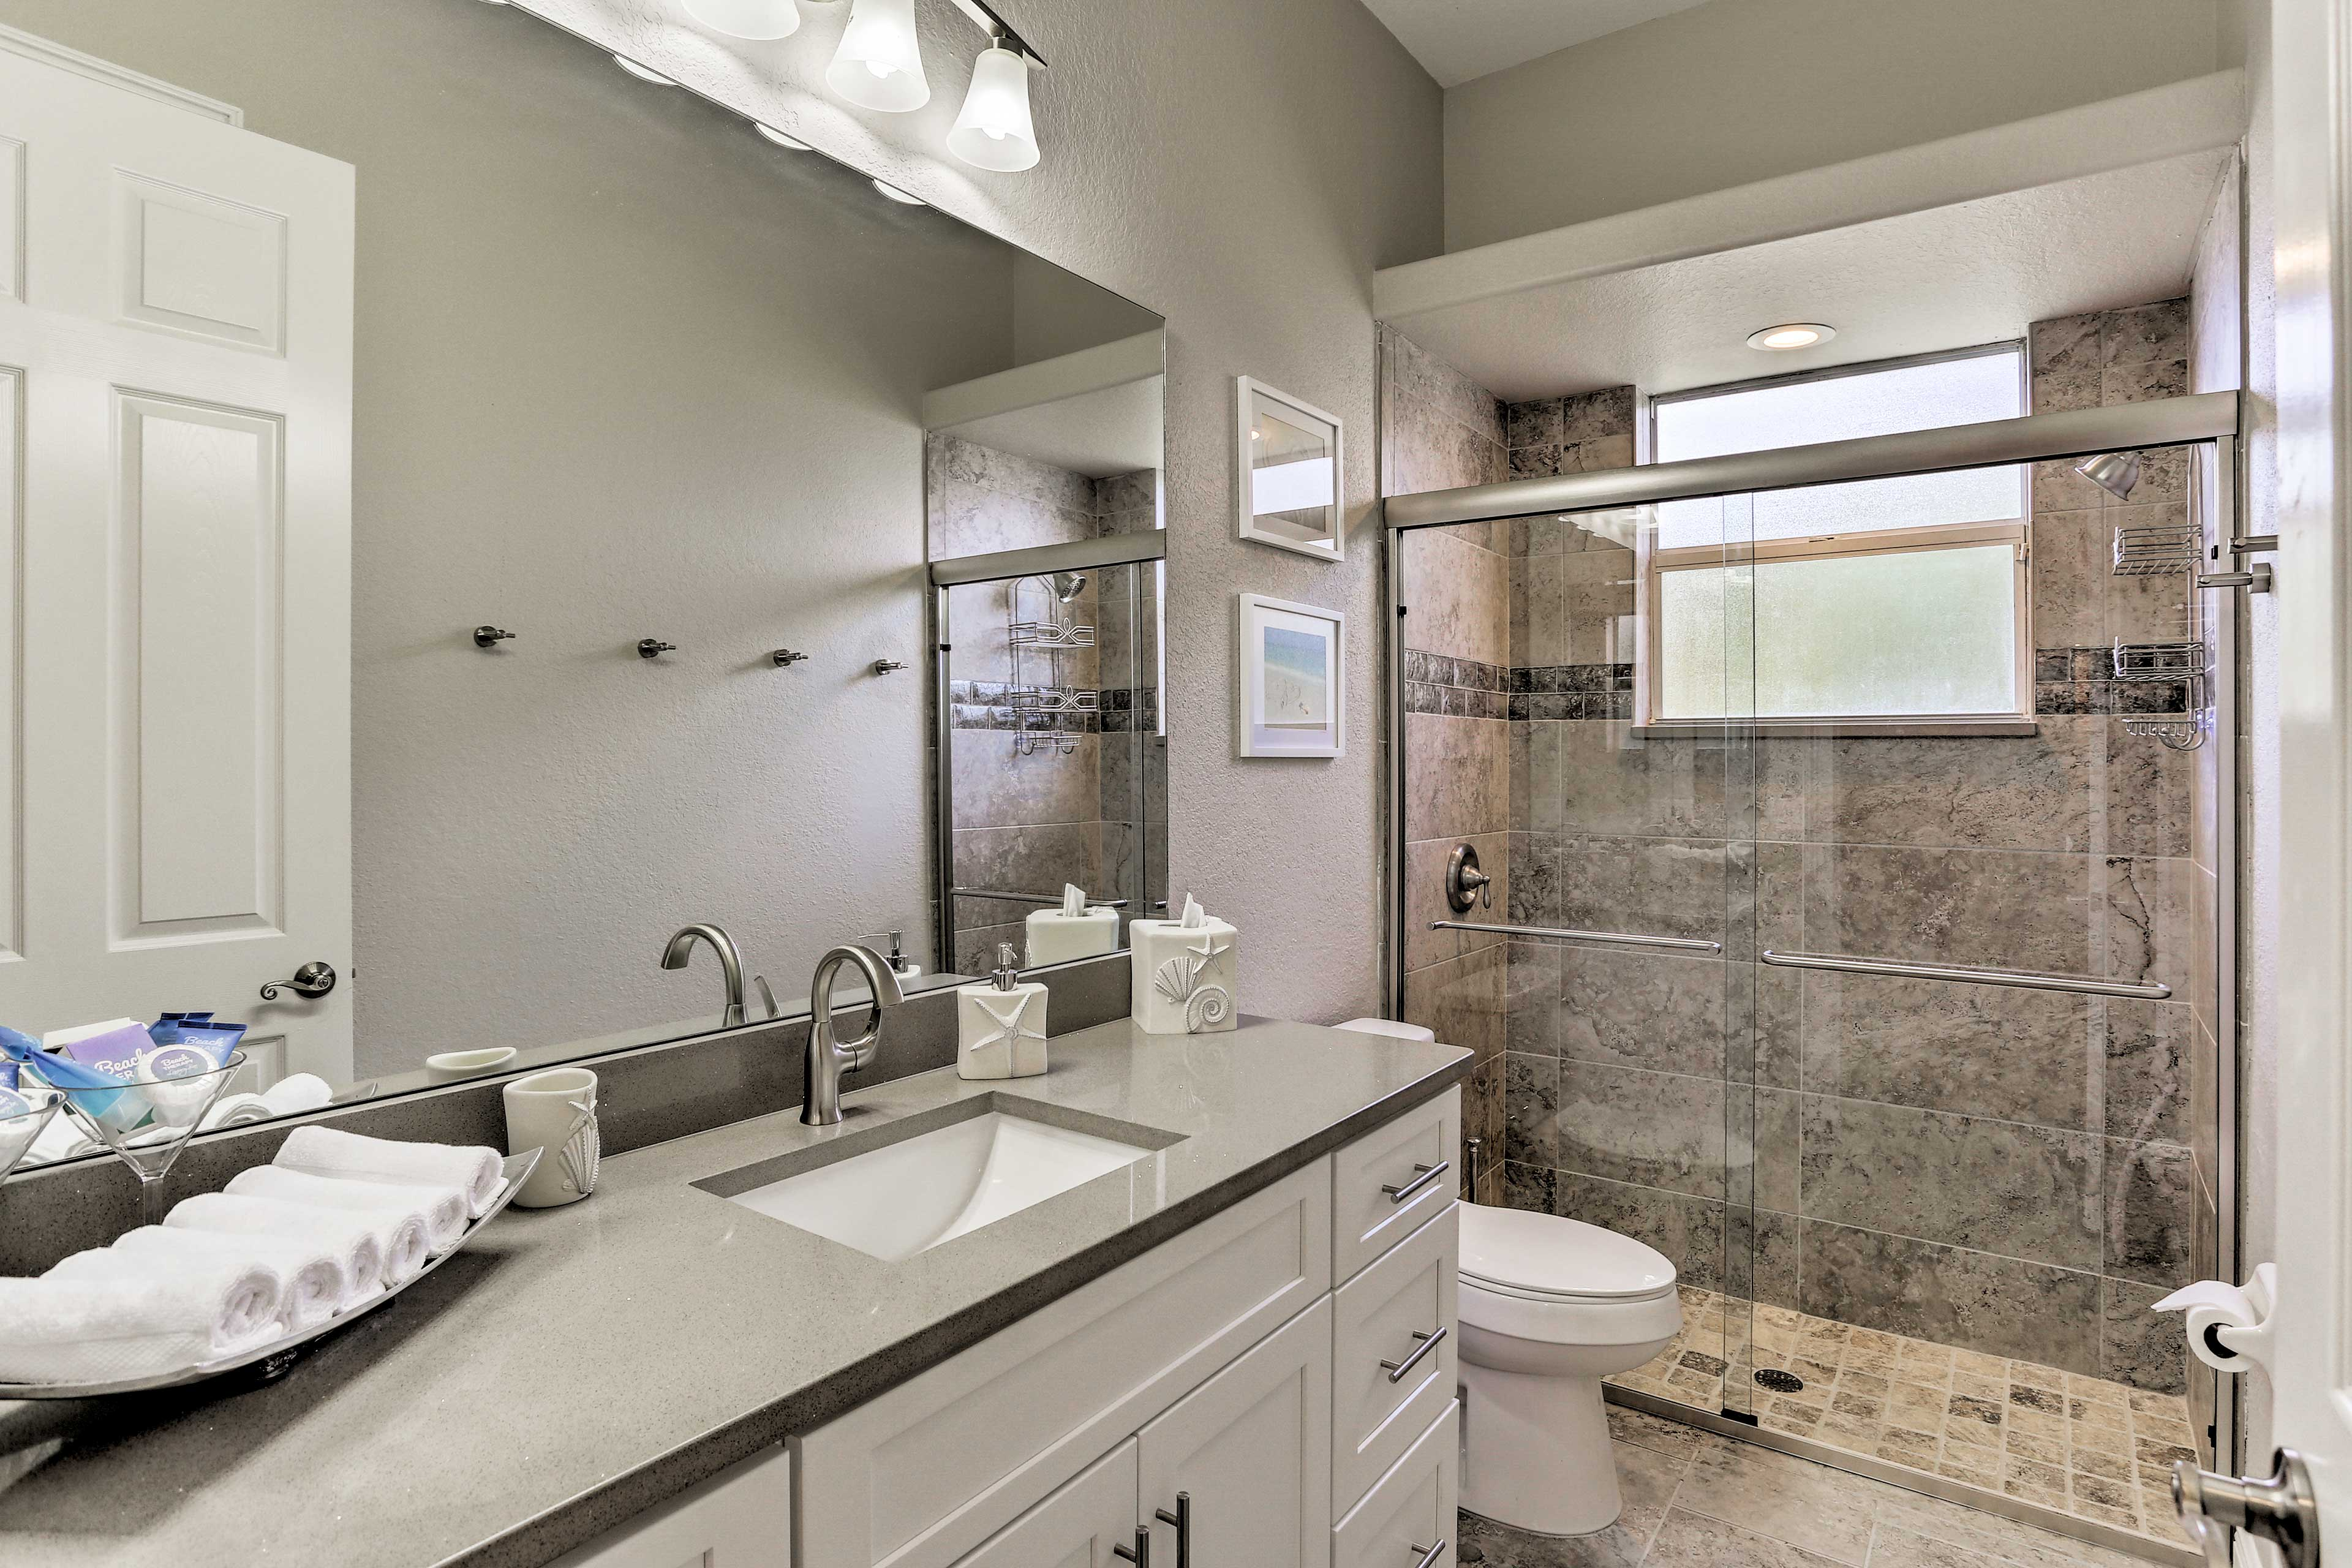 This second full bath houses a large walk-in shower.